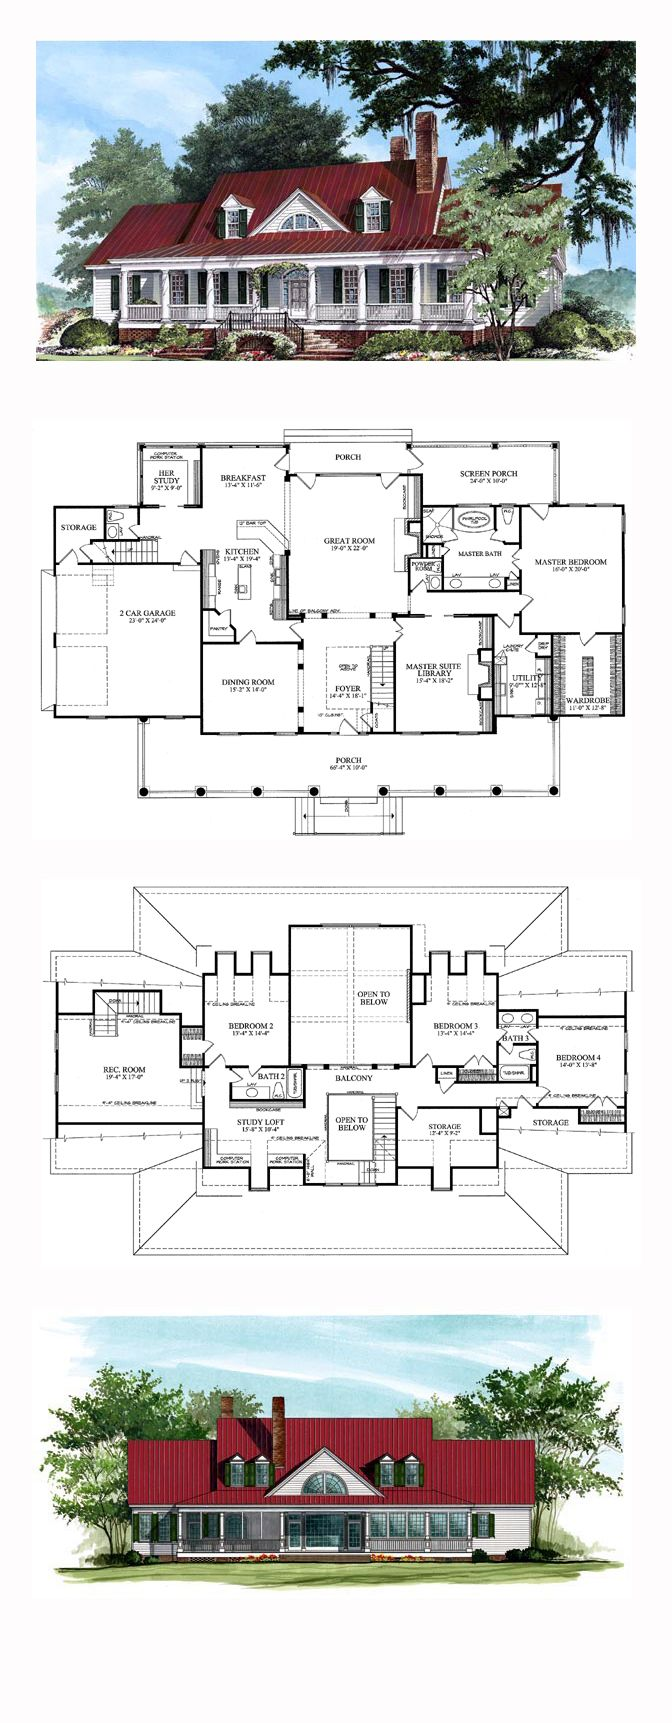 The 25 best house layouts ideas on pinterest house for Plantation desk plans